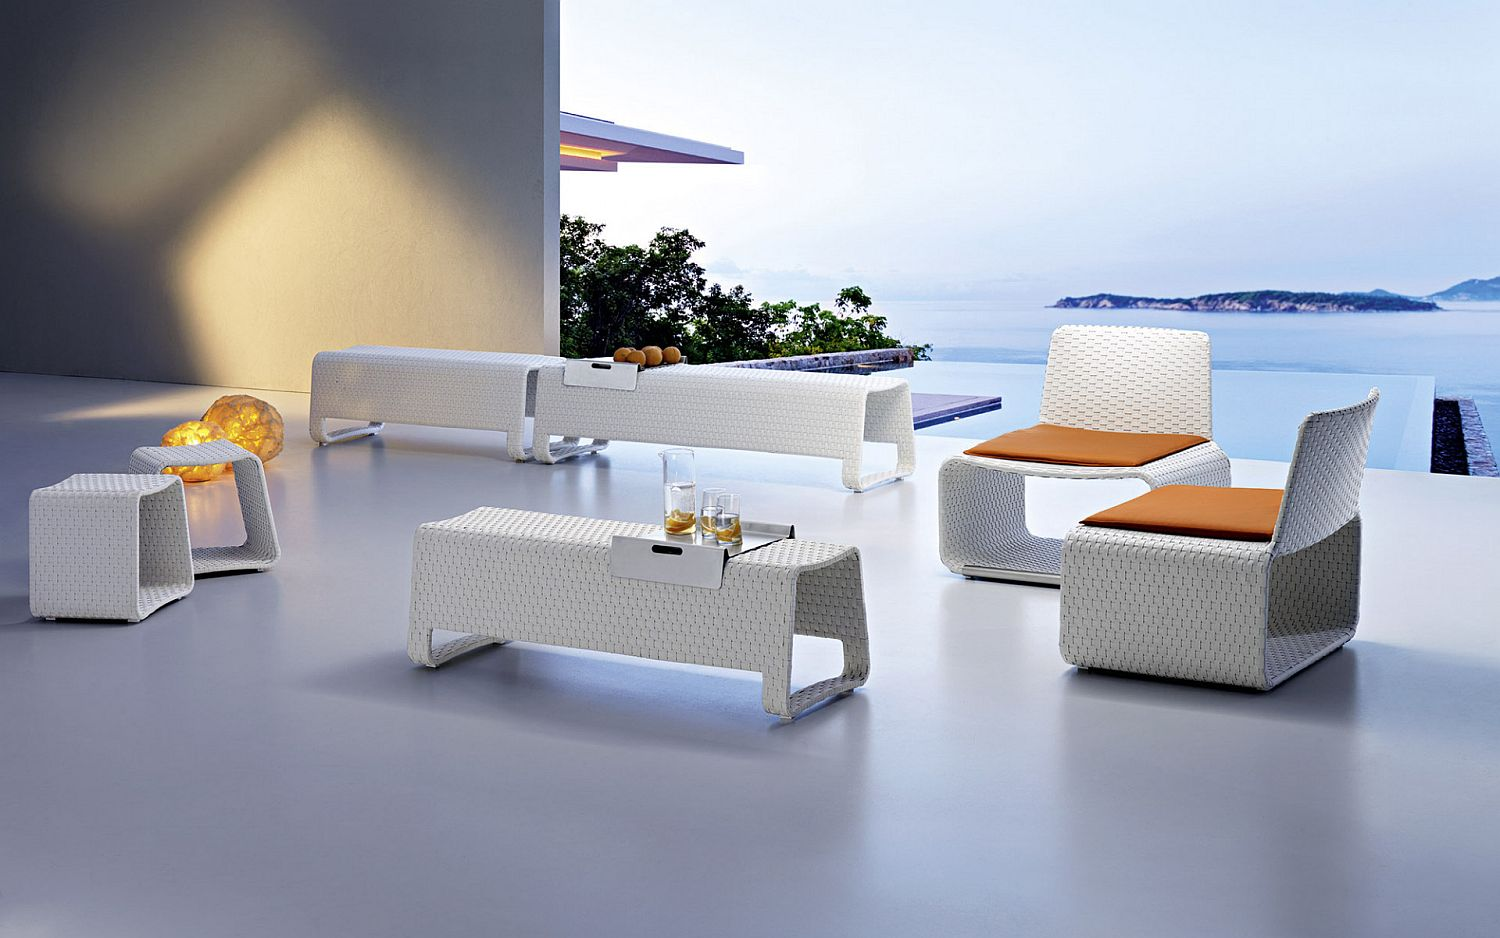 Stunning outdoor furniture in pure white